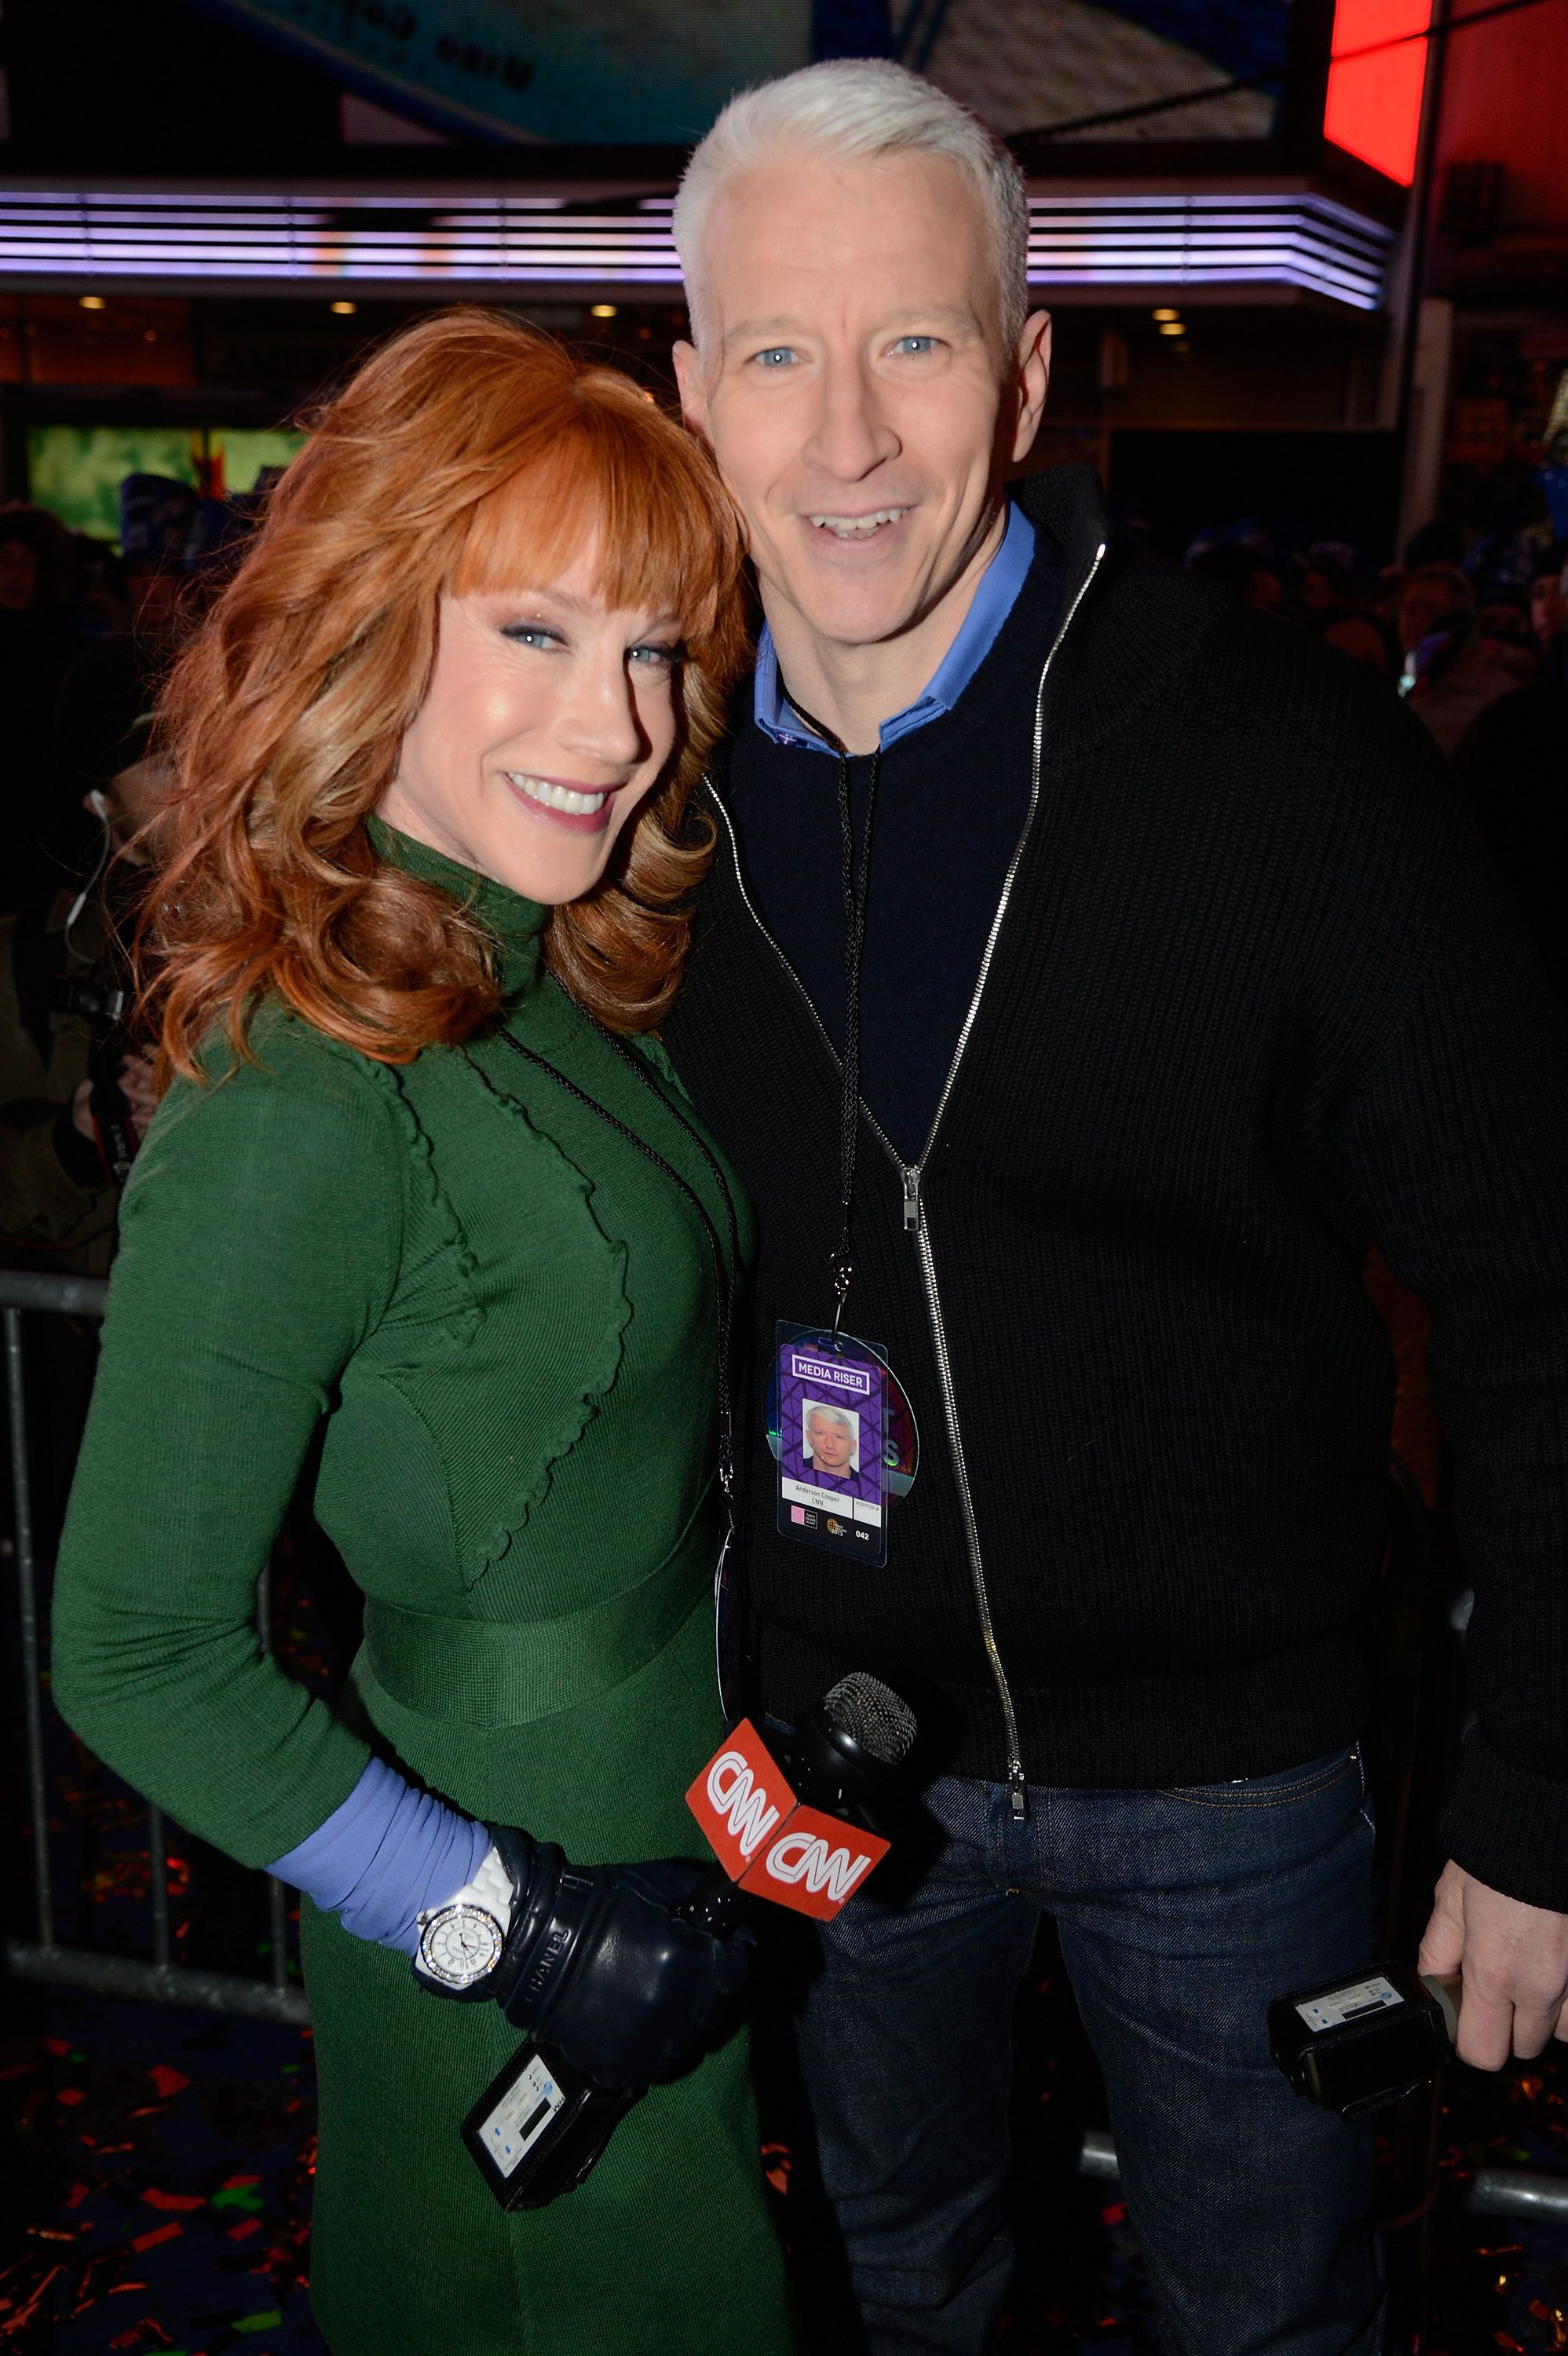 Kathy Griffin and Anderson Cooper at Dick Clark's New Year's Rockin' Eve with Ryan Seacrest on December 31, 2012, in New York City | Photo: Kevin Mazur/DCNYRE2013/Getty Images